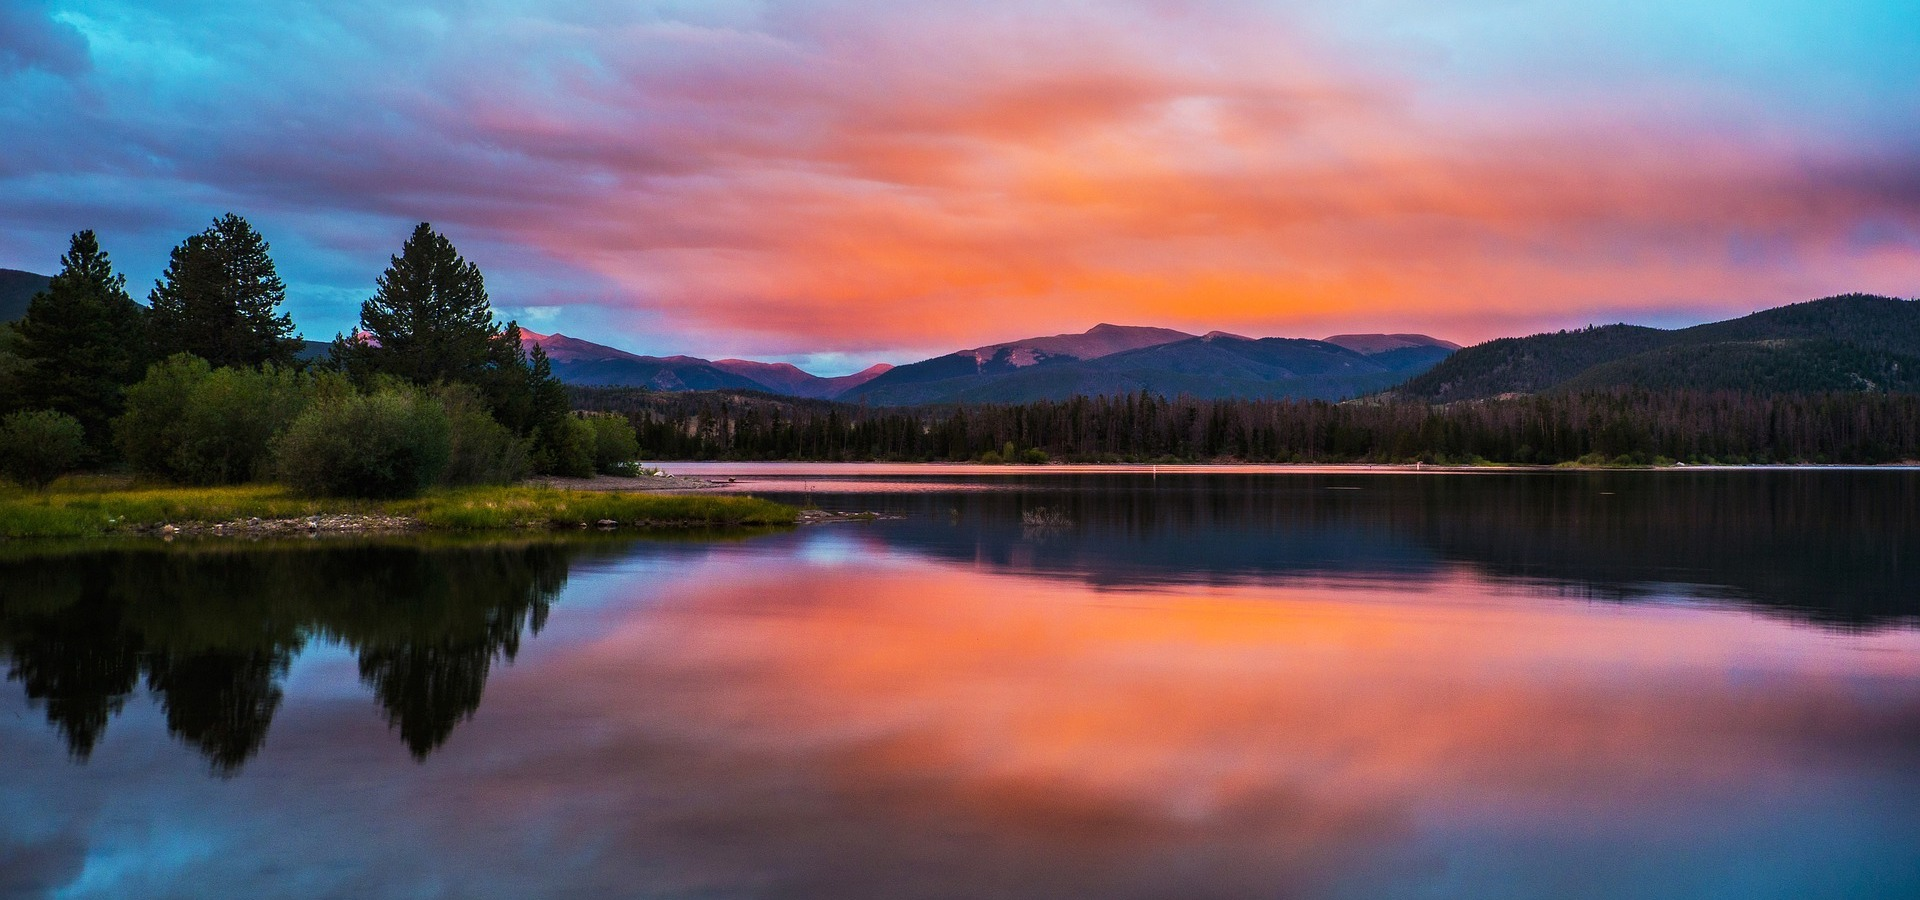 Sunset reflected in mountain lake